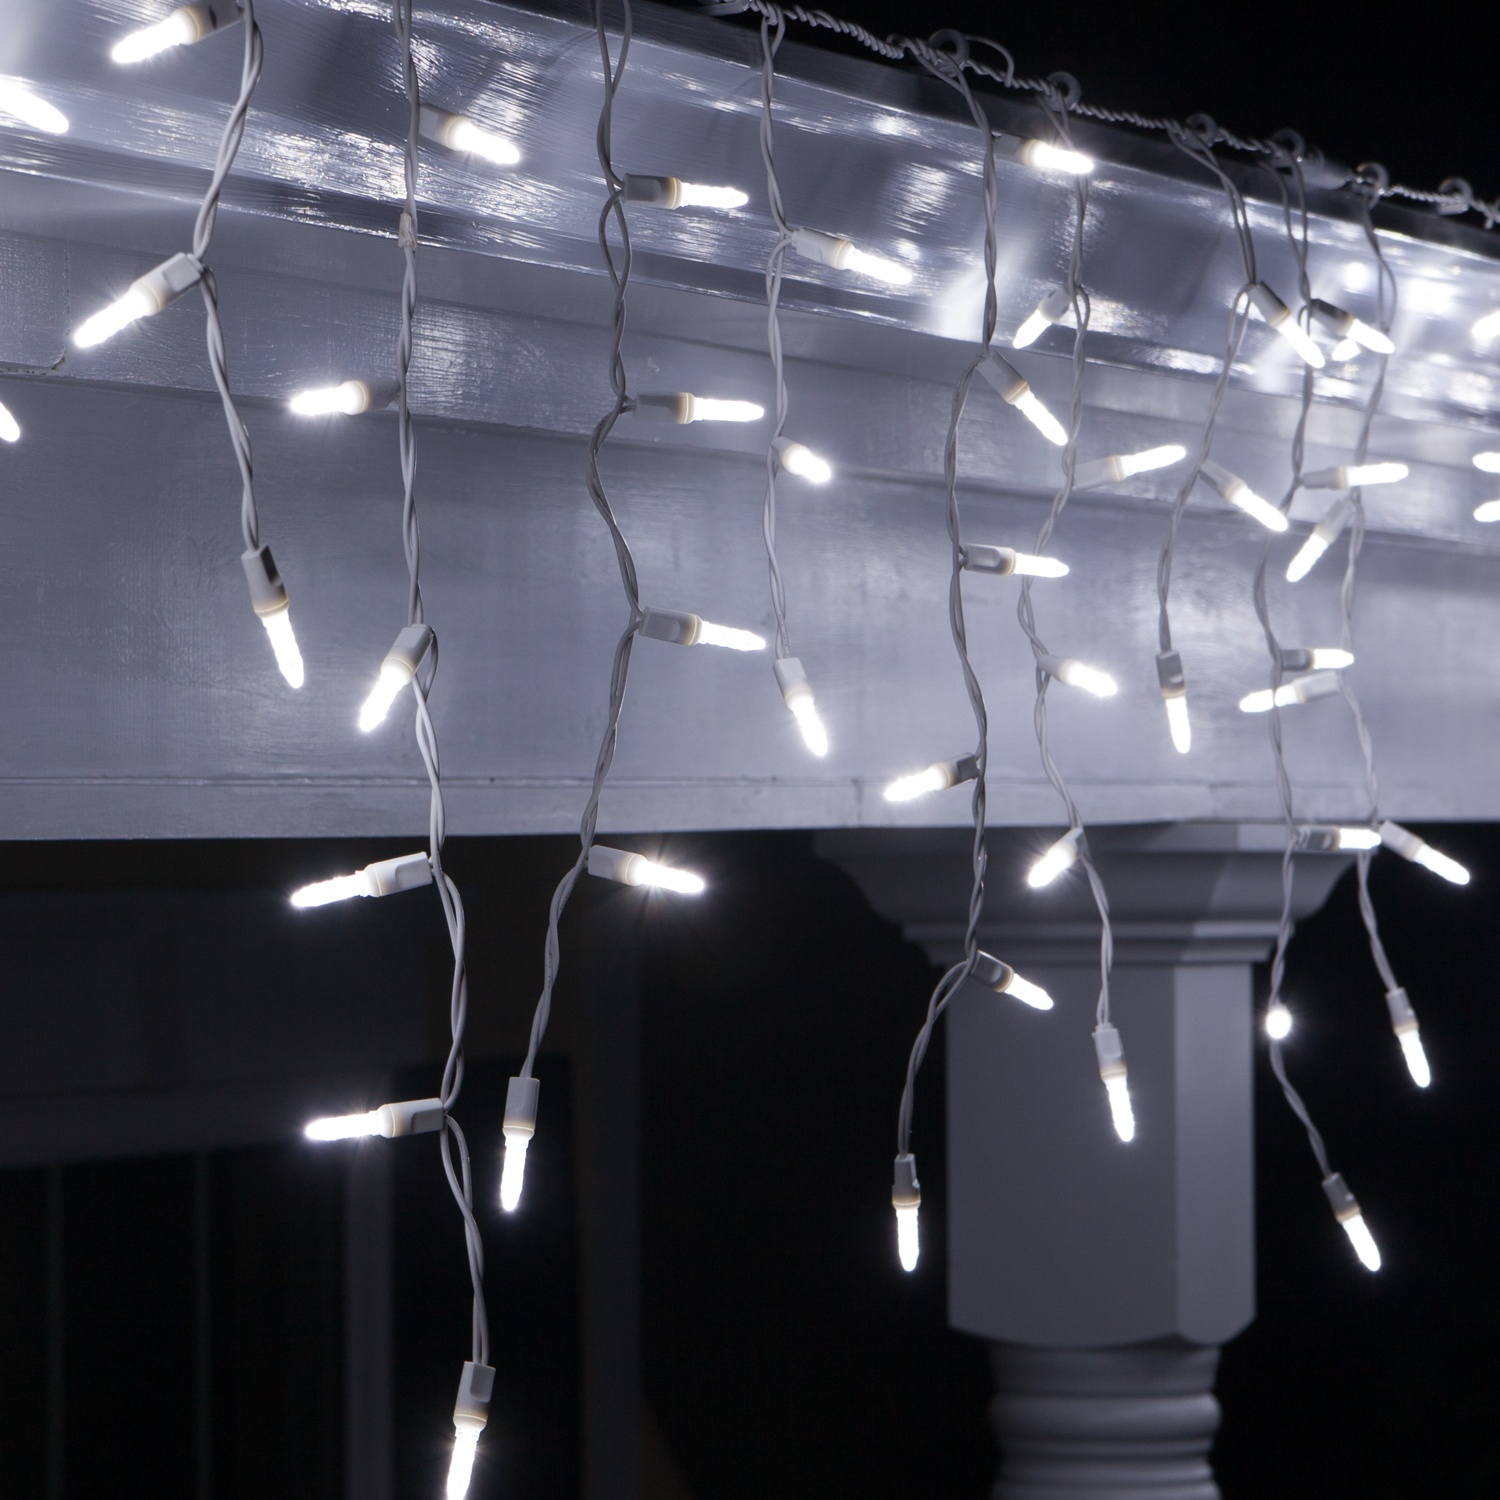 LED Christmas Lights - 70 M5 Cool White Twinkle LED Icicle Lights